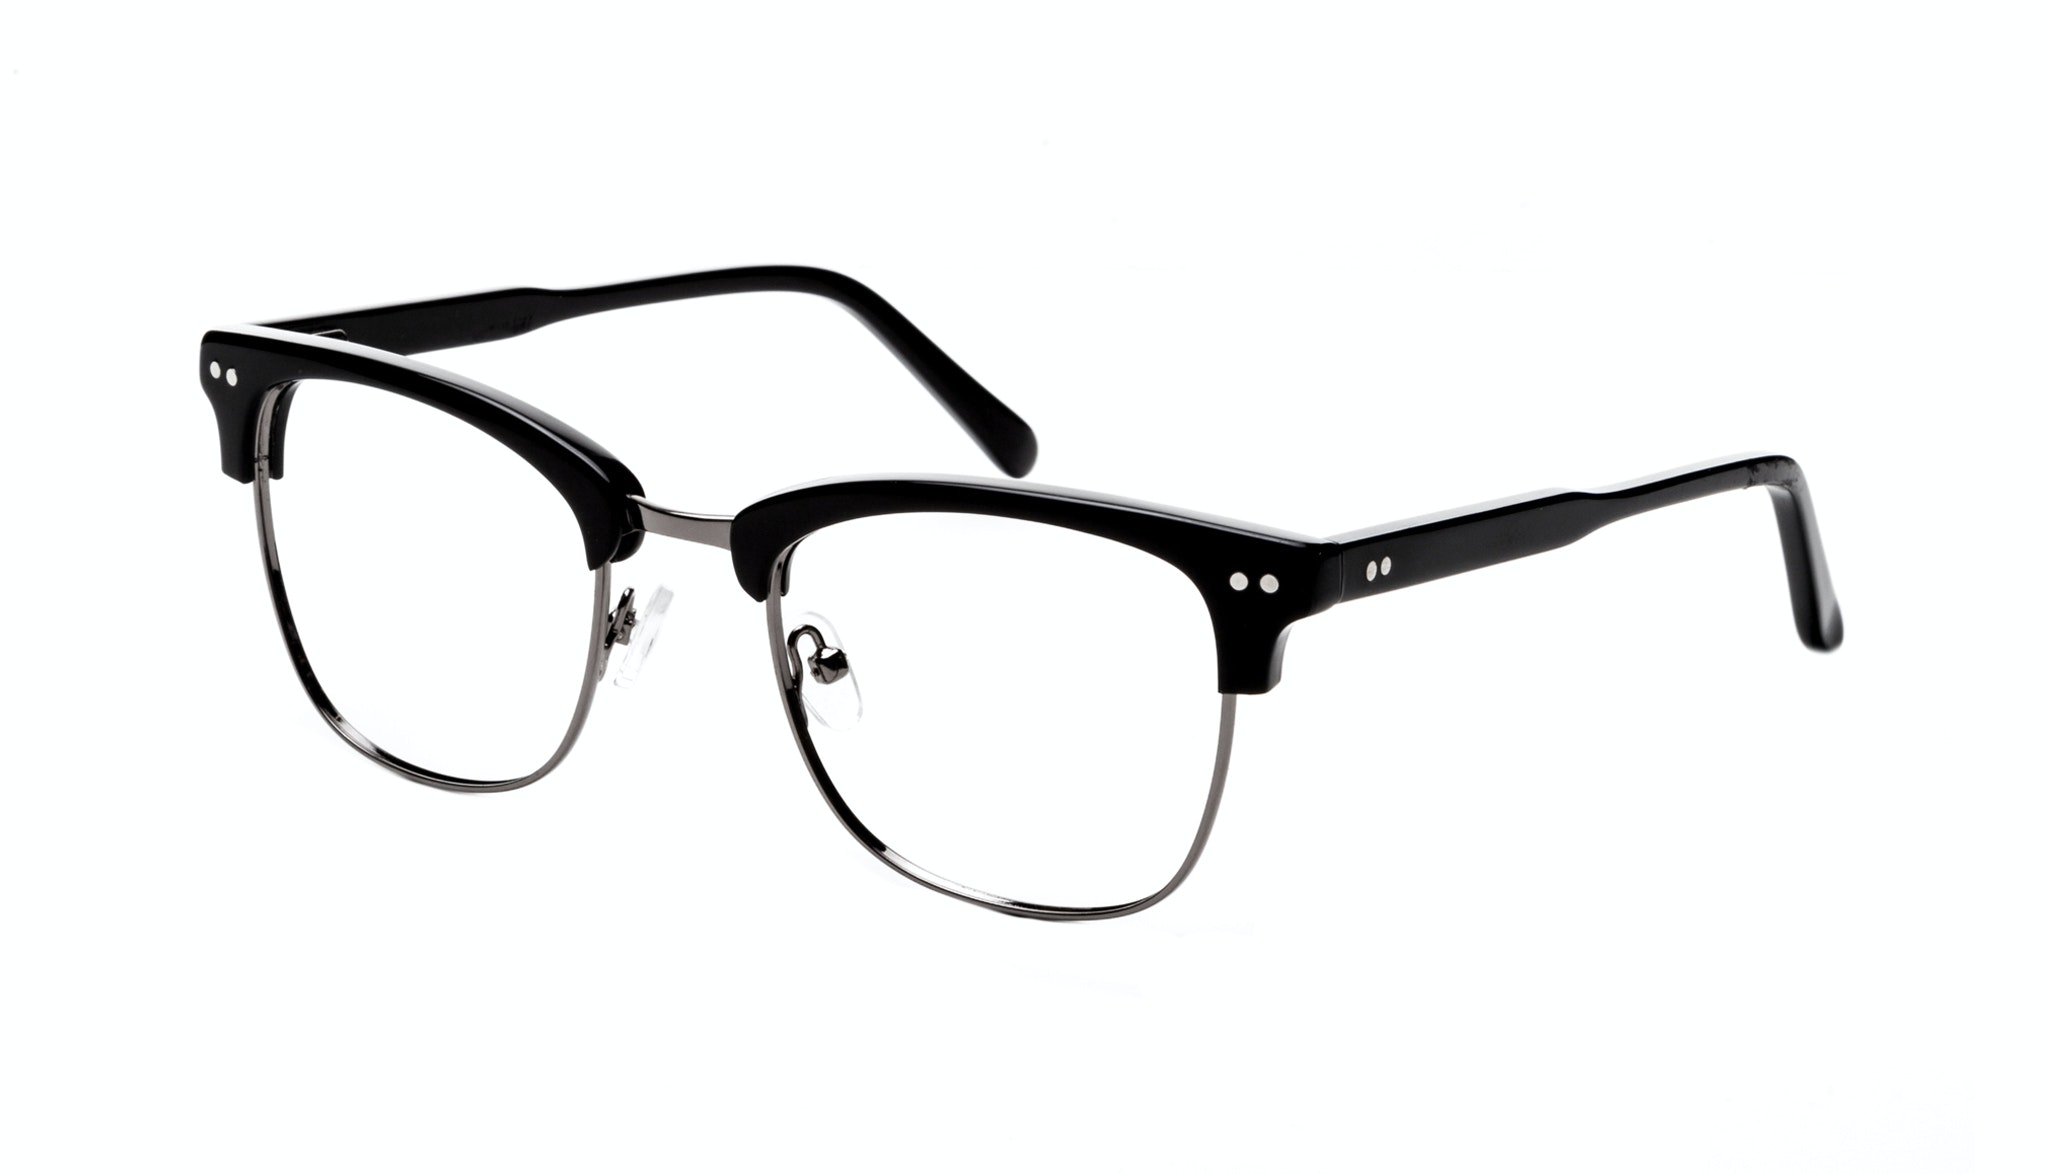 Affordable Fashion Glasses Square Eyeglasses Men Women Lift Onyx Tilt